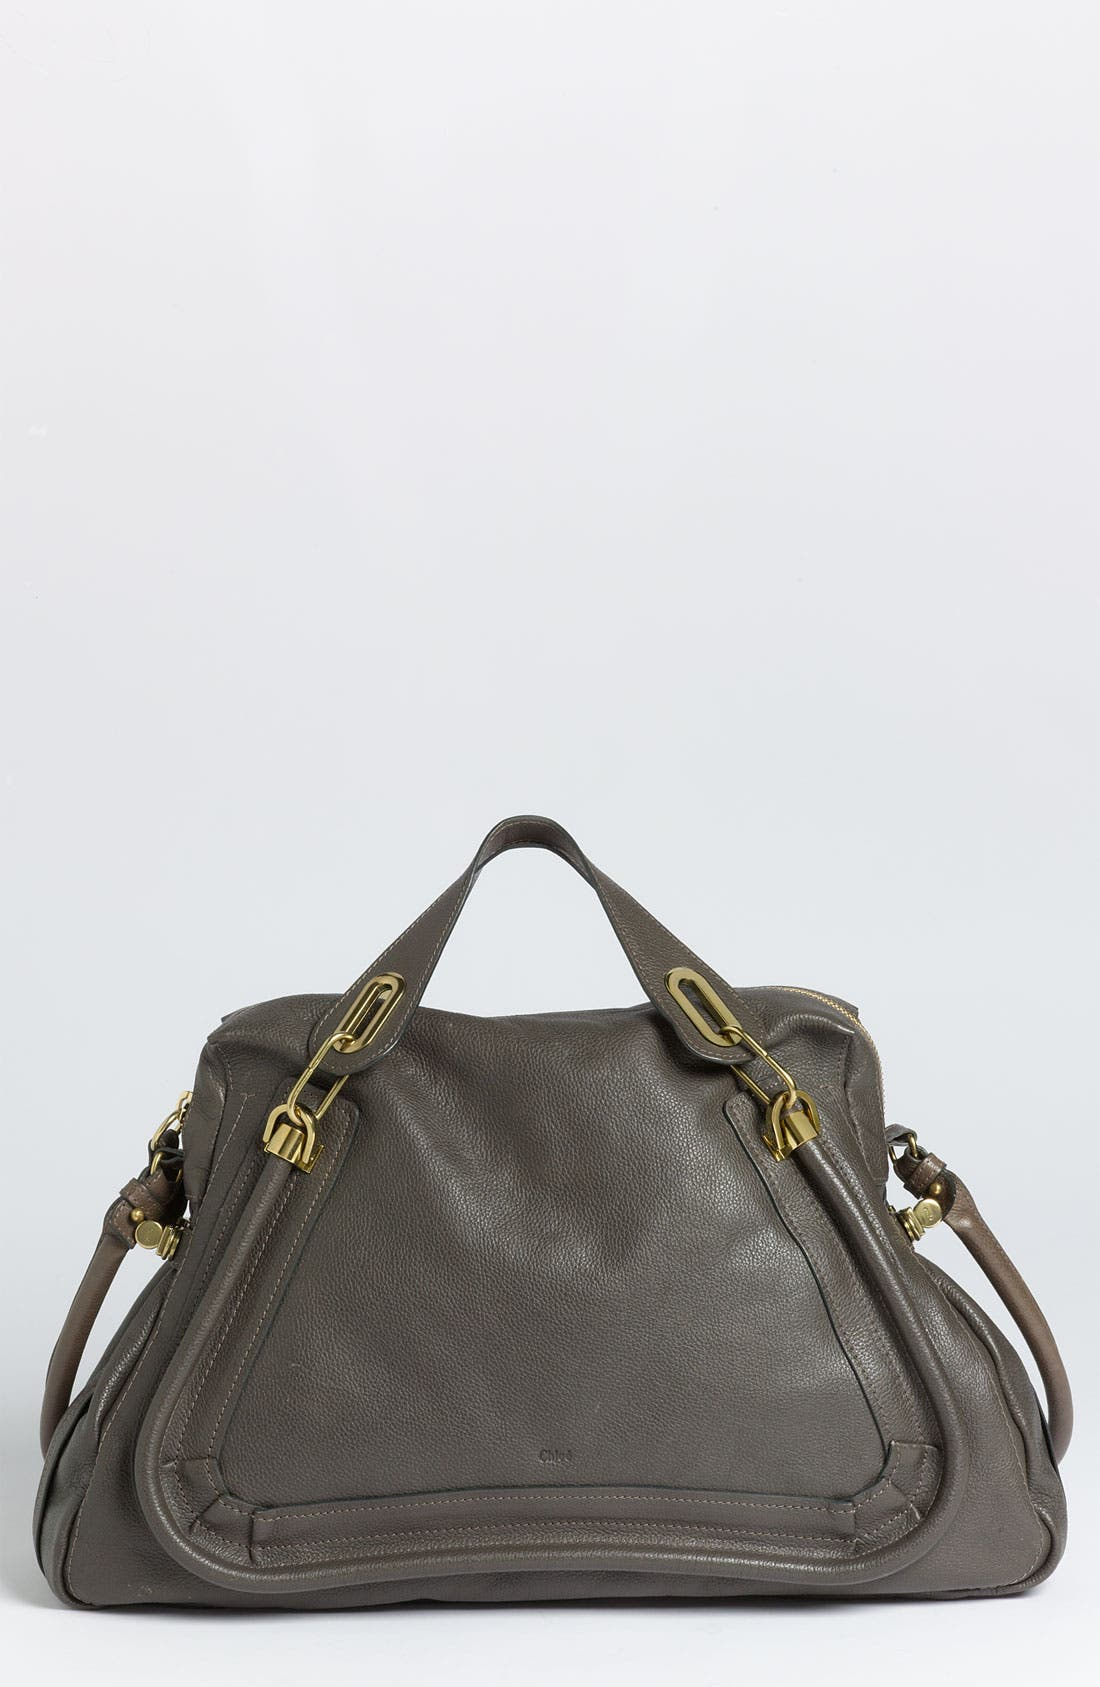 Alternate Image 1 Selected - Chloé 'Paraty - Large' Calfskin Leather Satchel